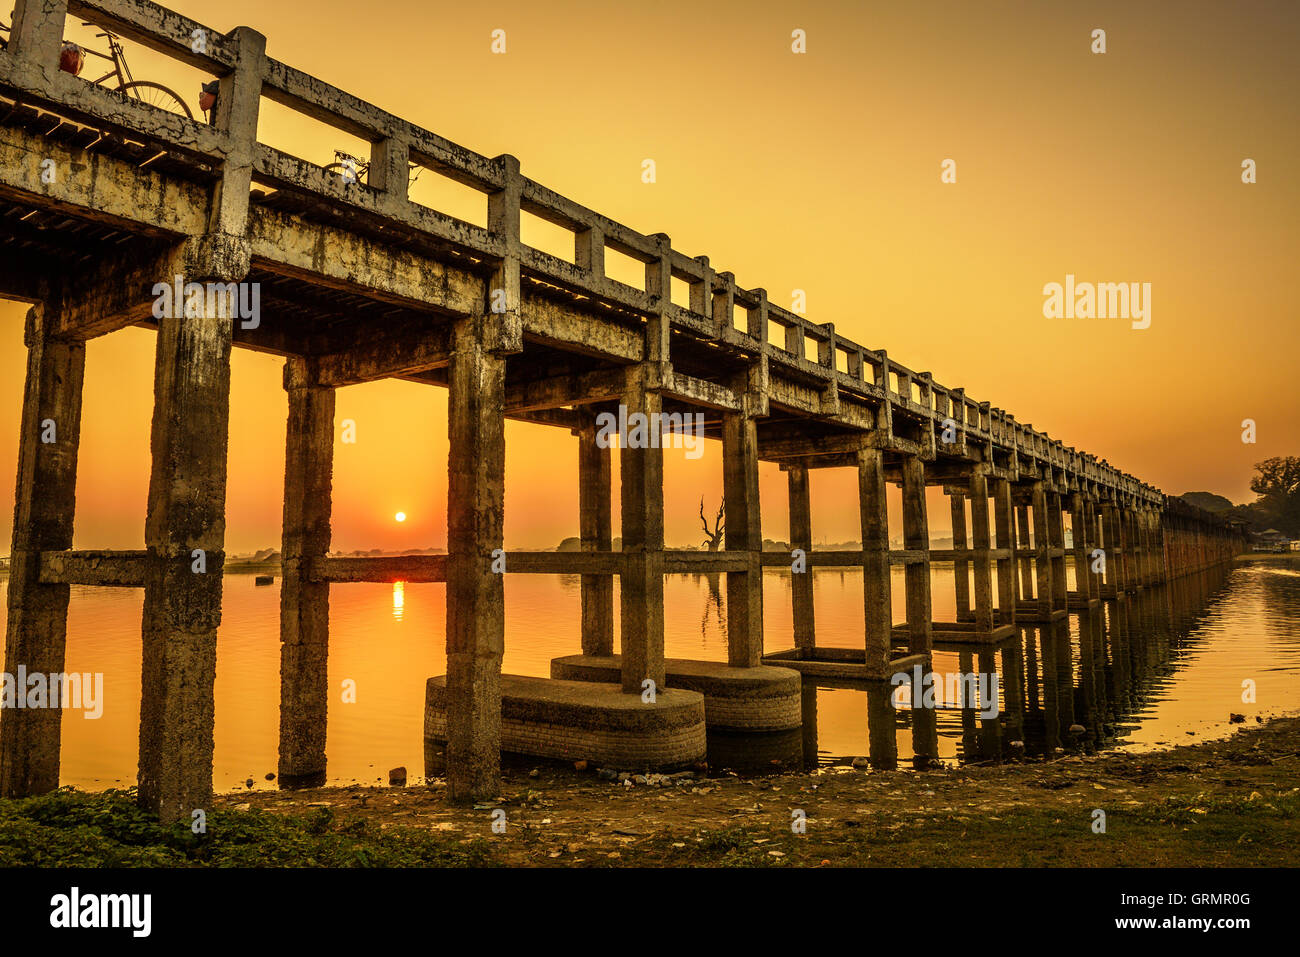 Sunset over the historic wooden U Bein Bridge near Mandalay in Myanmar. Long exposure. - Stock Image